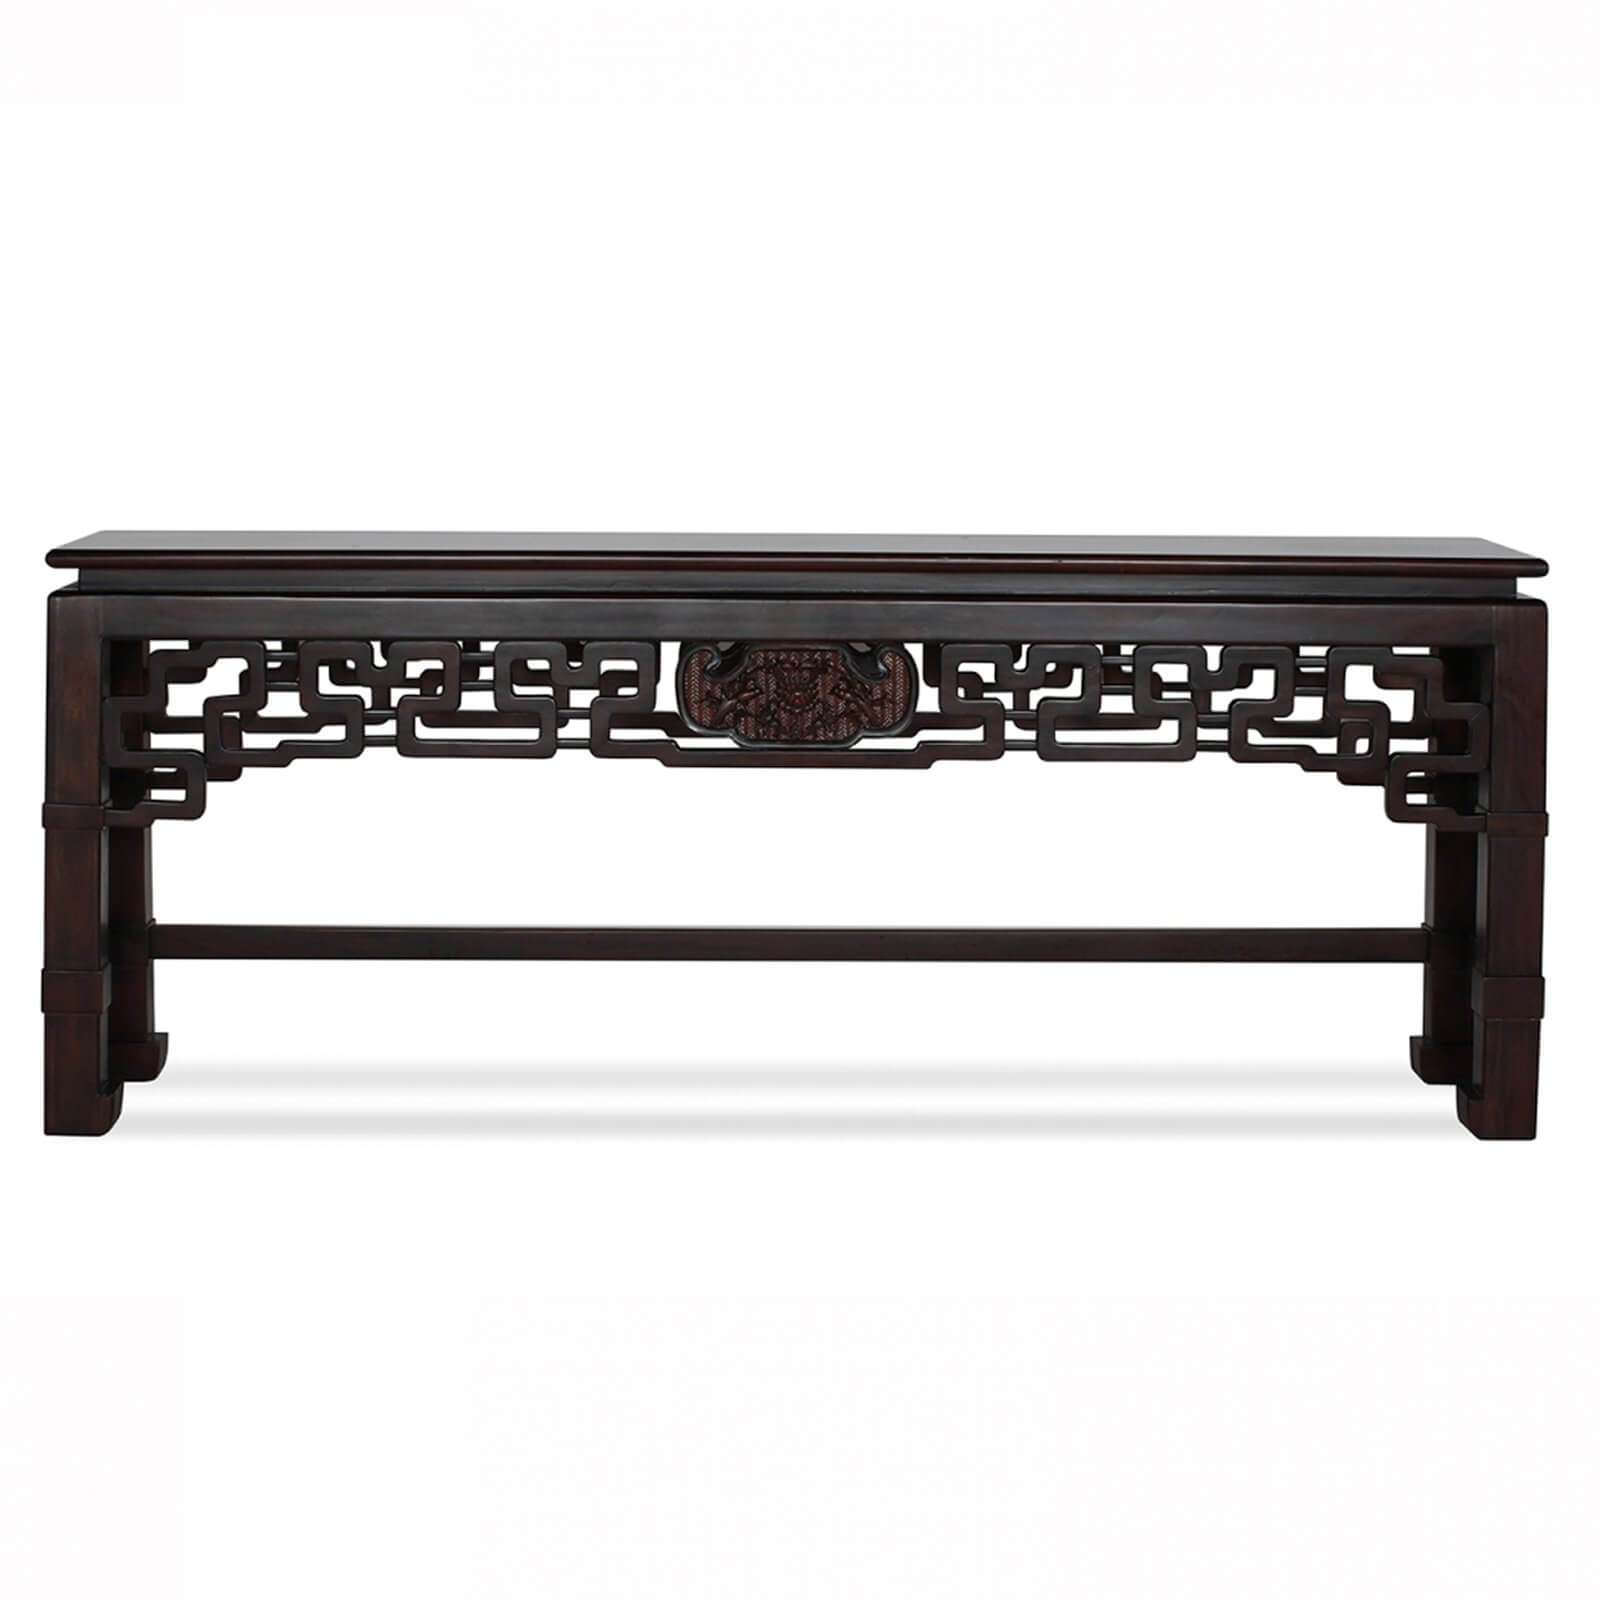 TEMPLE STREET CONSOLE TEST - STUART MEMBERY HOME COLLECTION